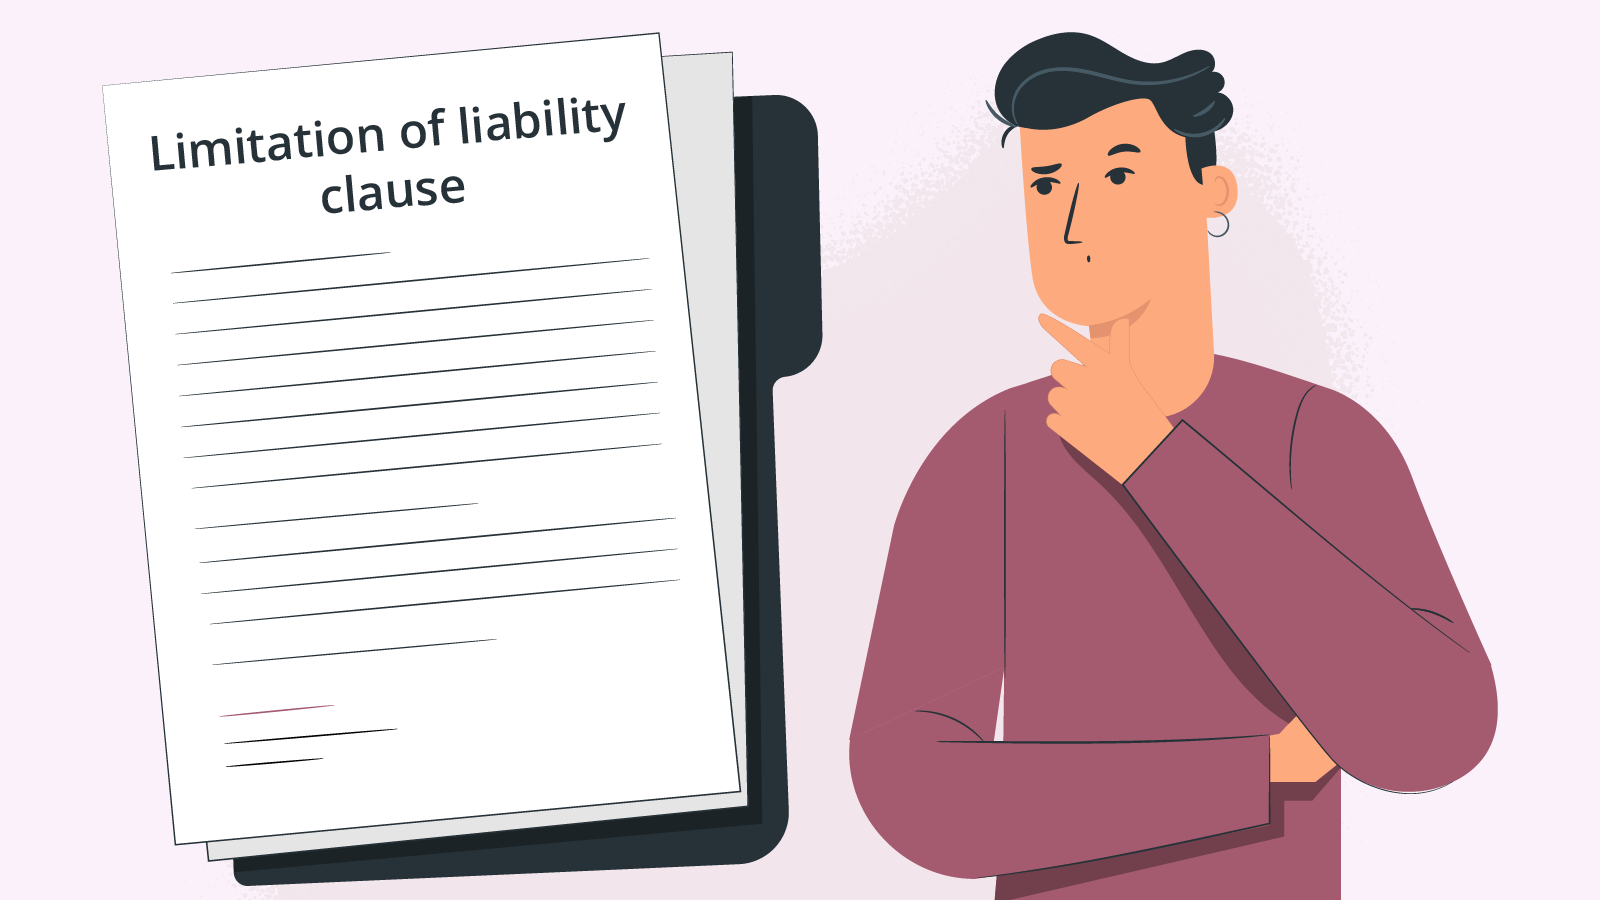 Limitation of liability and copy